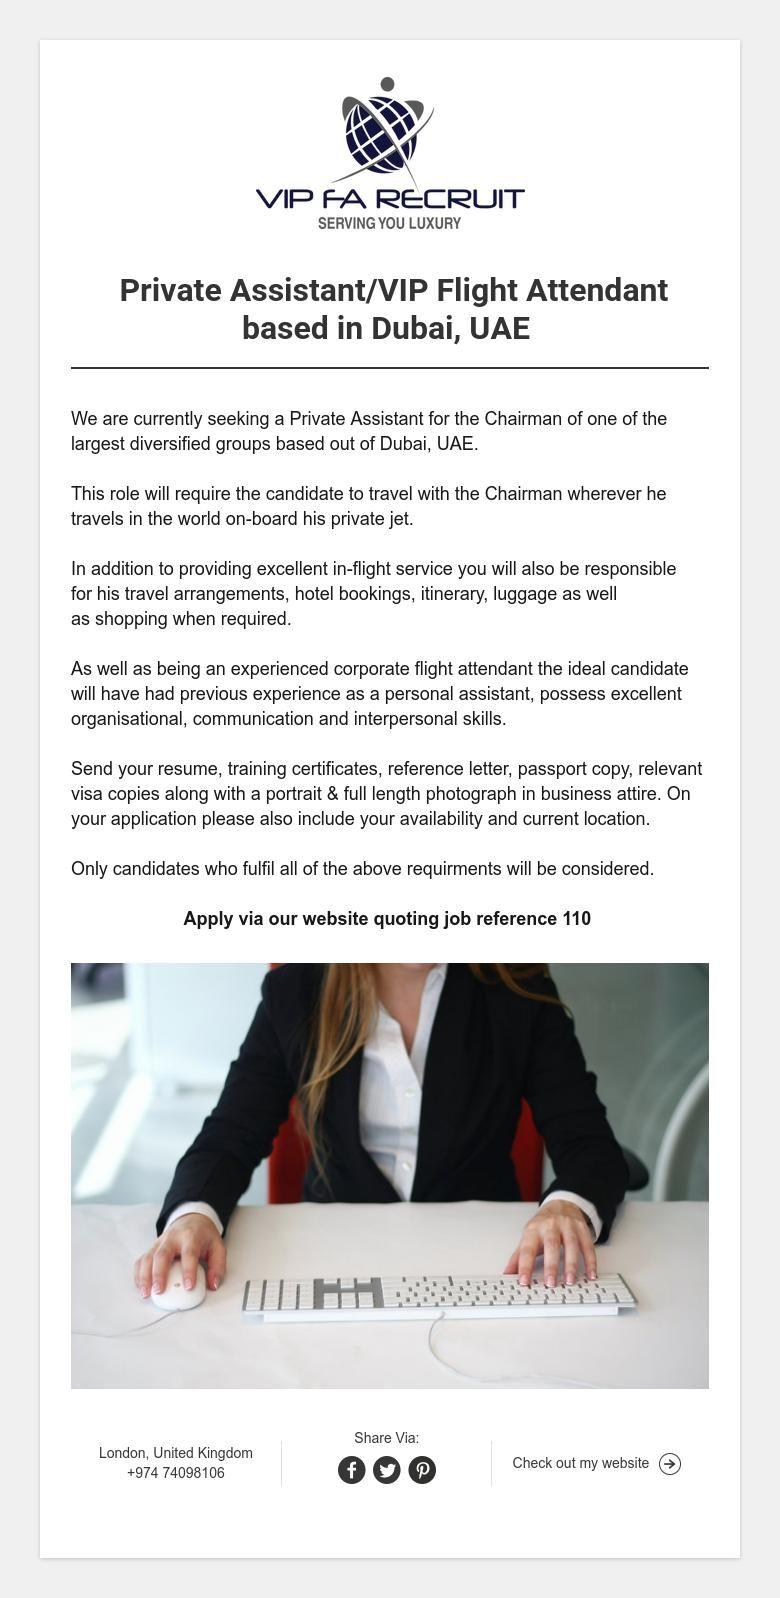 Private Assistant Vip Flight Attendant Based In Dubai Uae Flight Attendant Job Reference Dubai